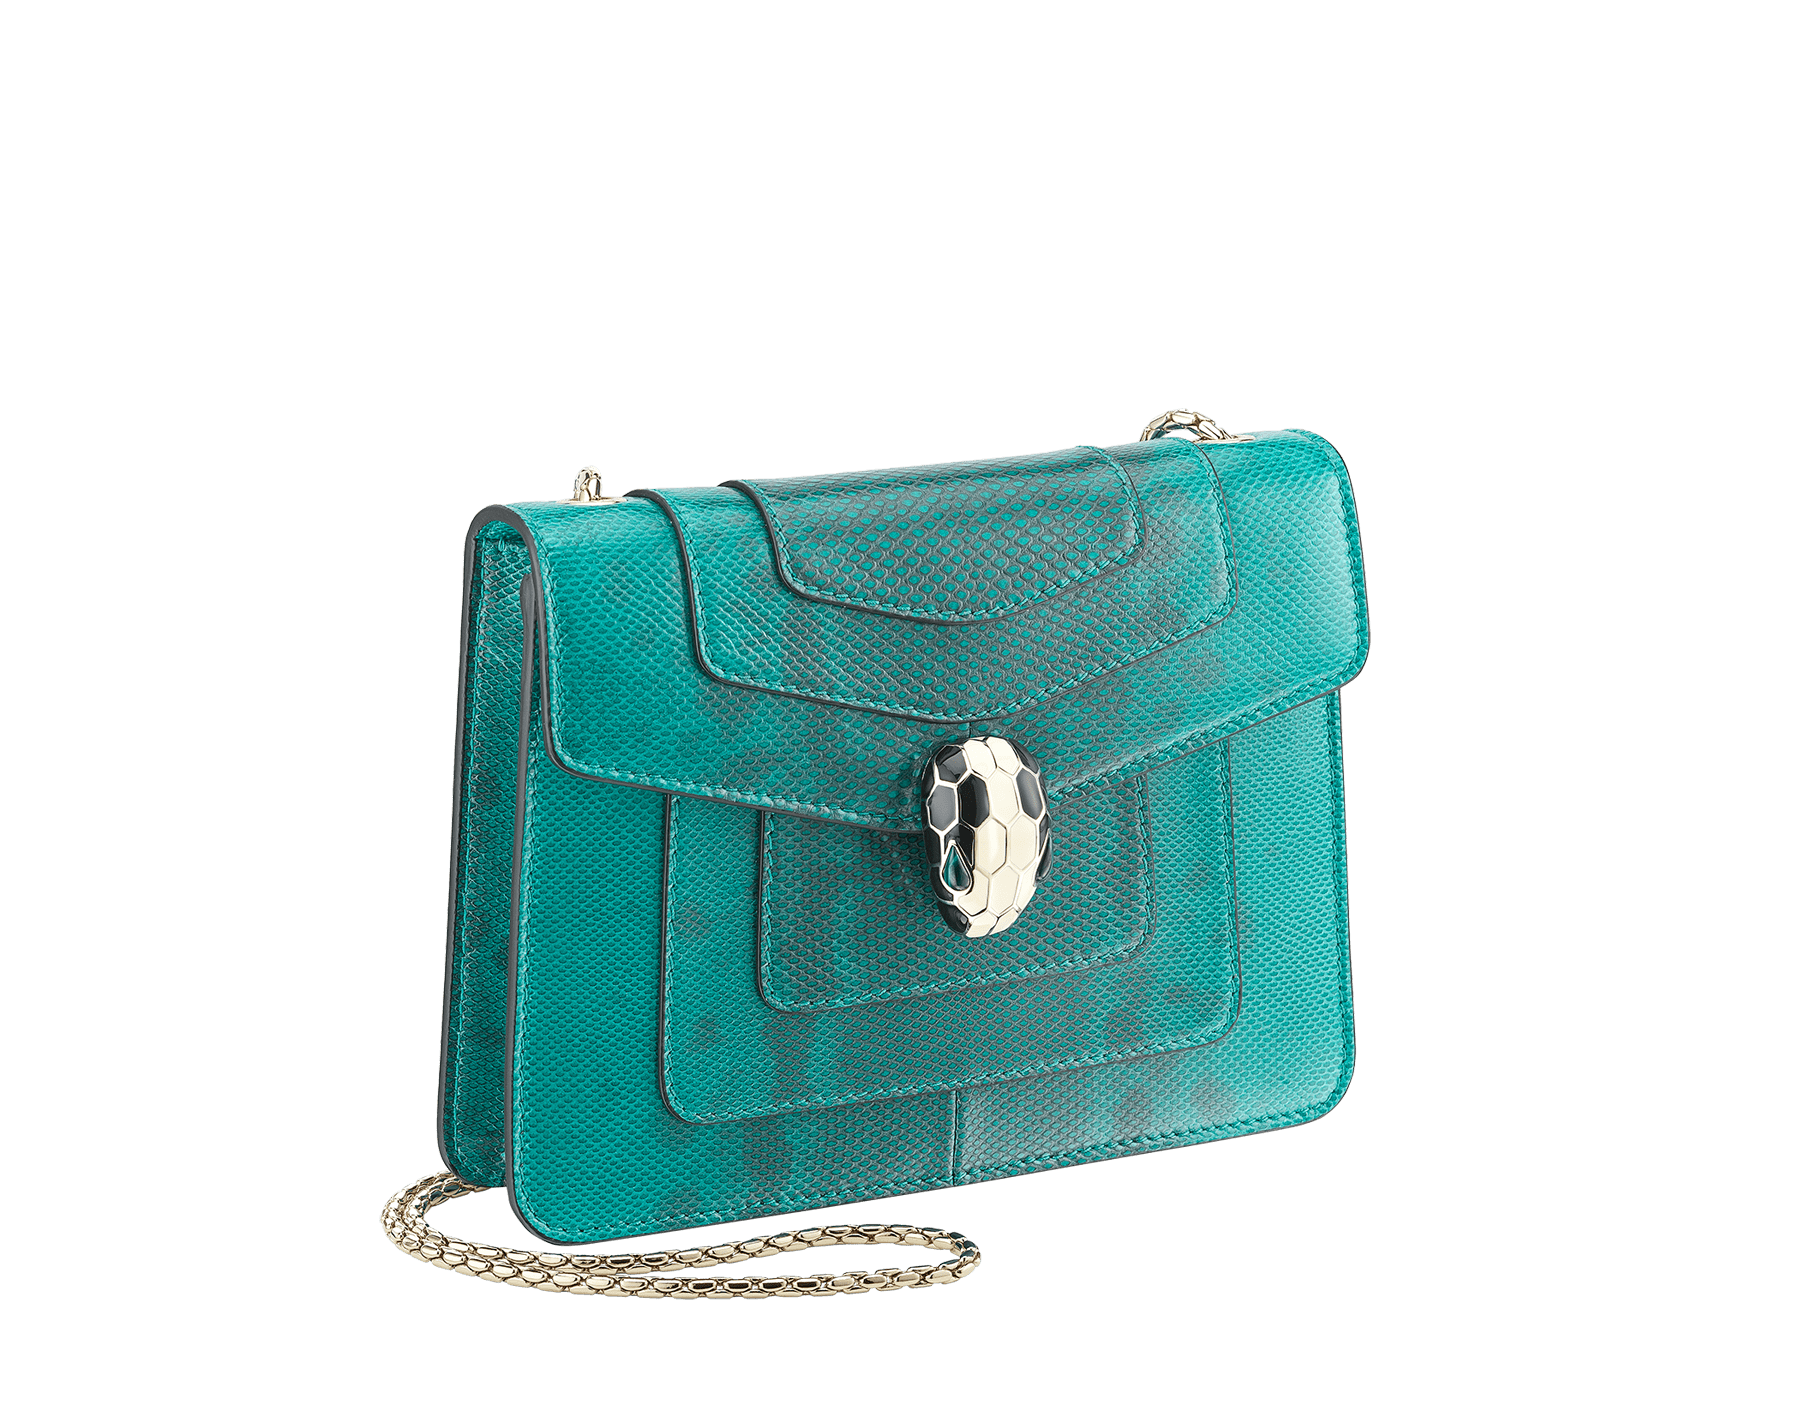 Serpenti Forever crossbody bag in tropical turquoise shiny karung skin. Snakehead closure in light gold plated brass decorated with black and white enamel, and green malachite eyes. 287912 image 2